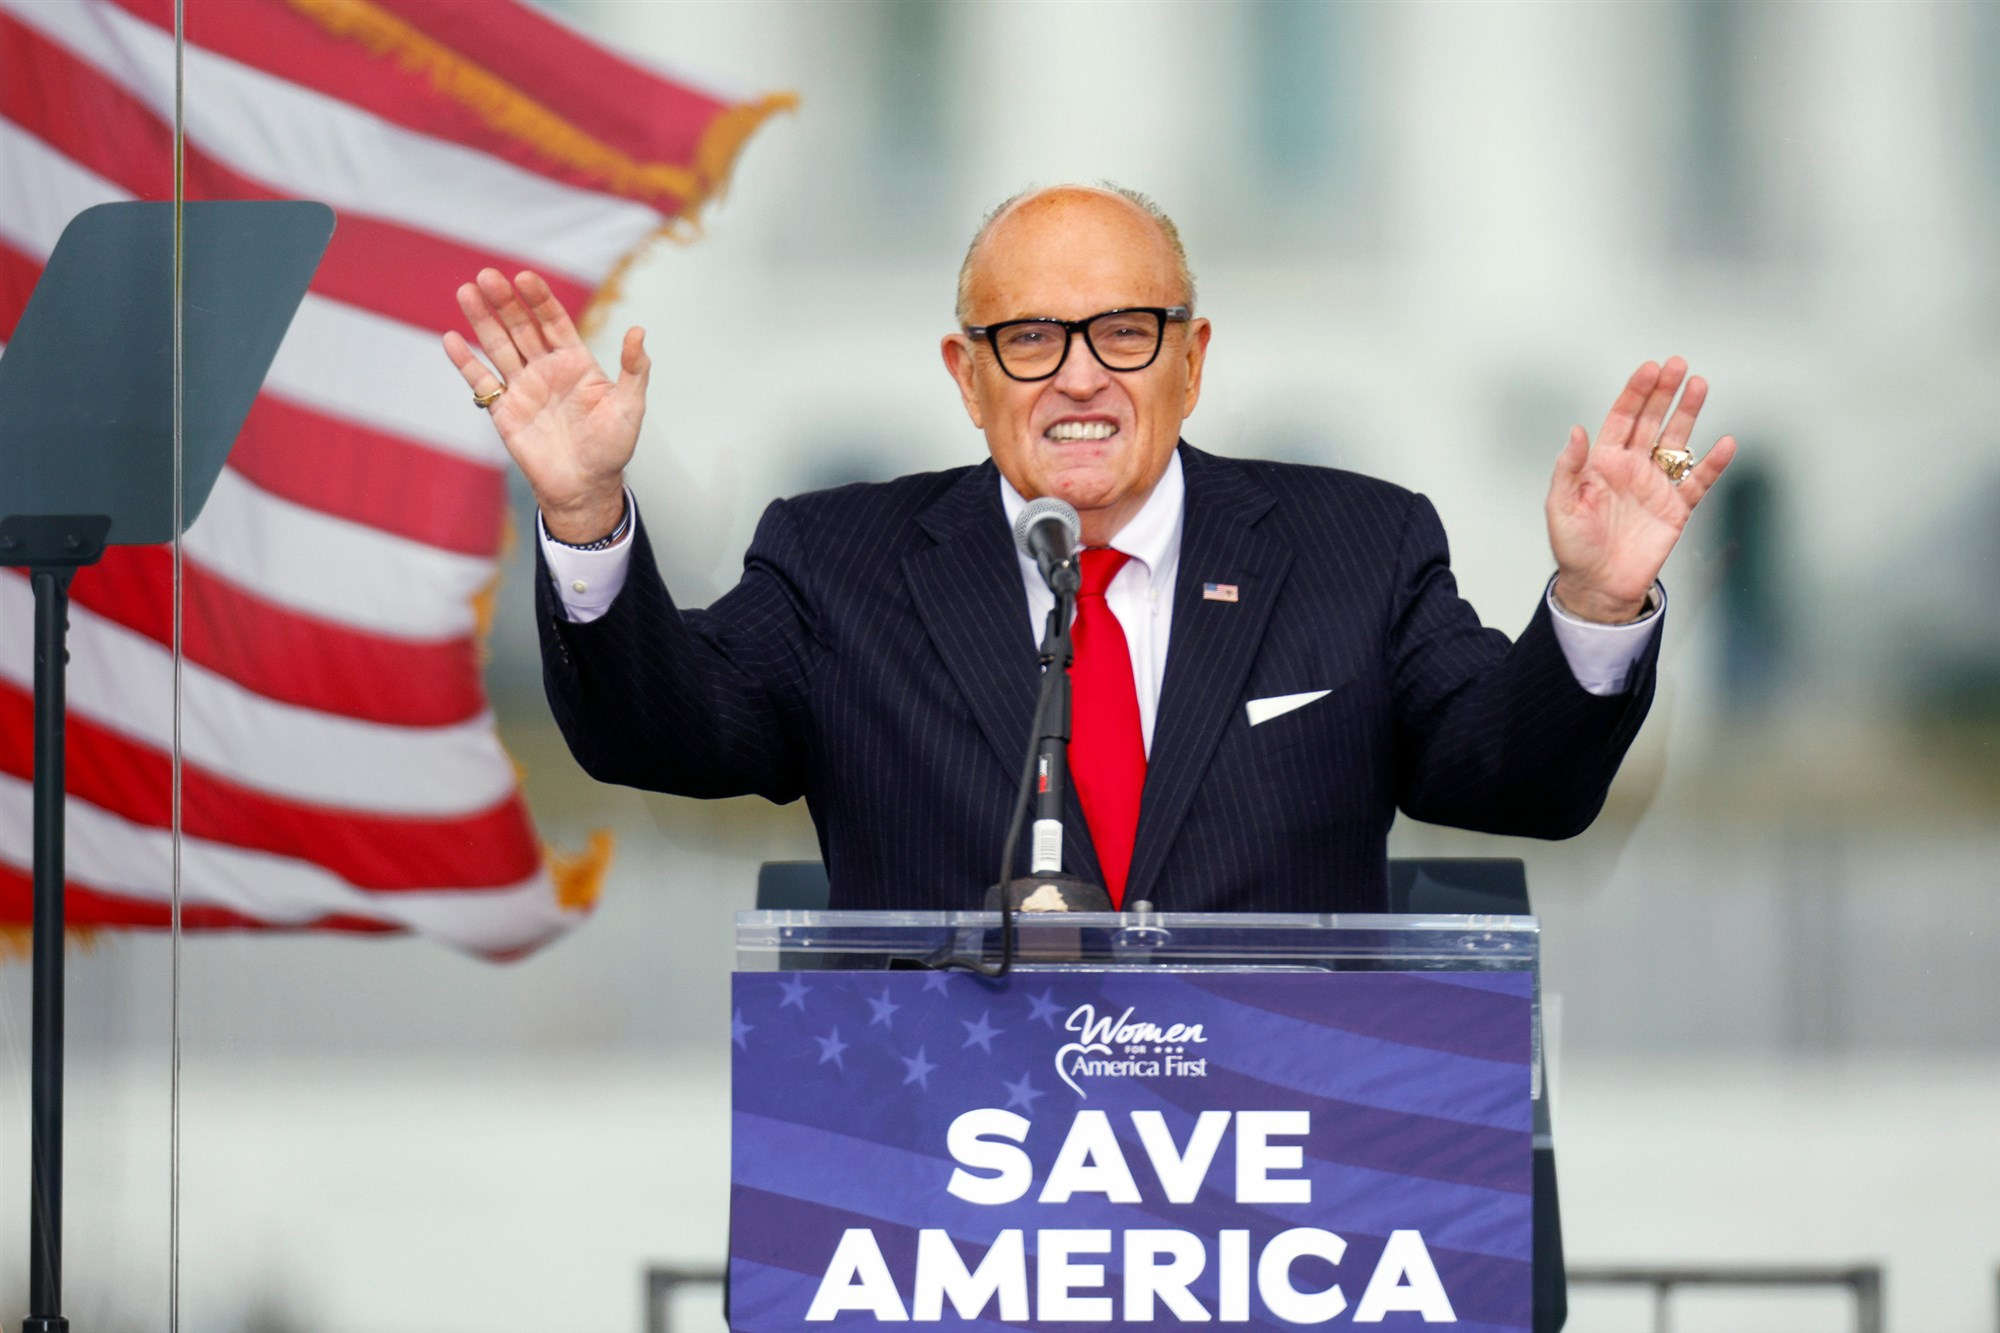 New York State Bar Moves to Disbar Rudy Giuliani